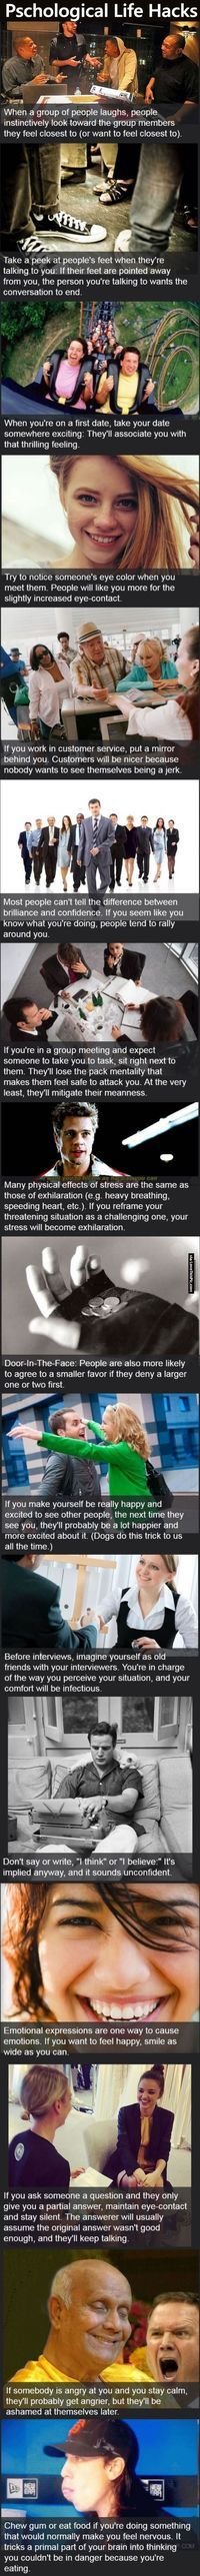 Psychological Life Hacks Pictures, Photos, and Images for Facebook, Tumblr…